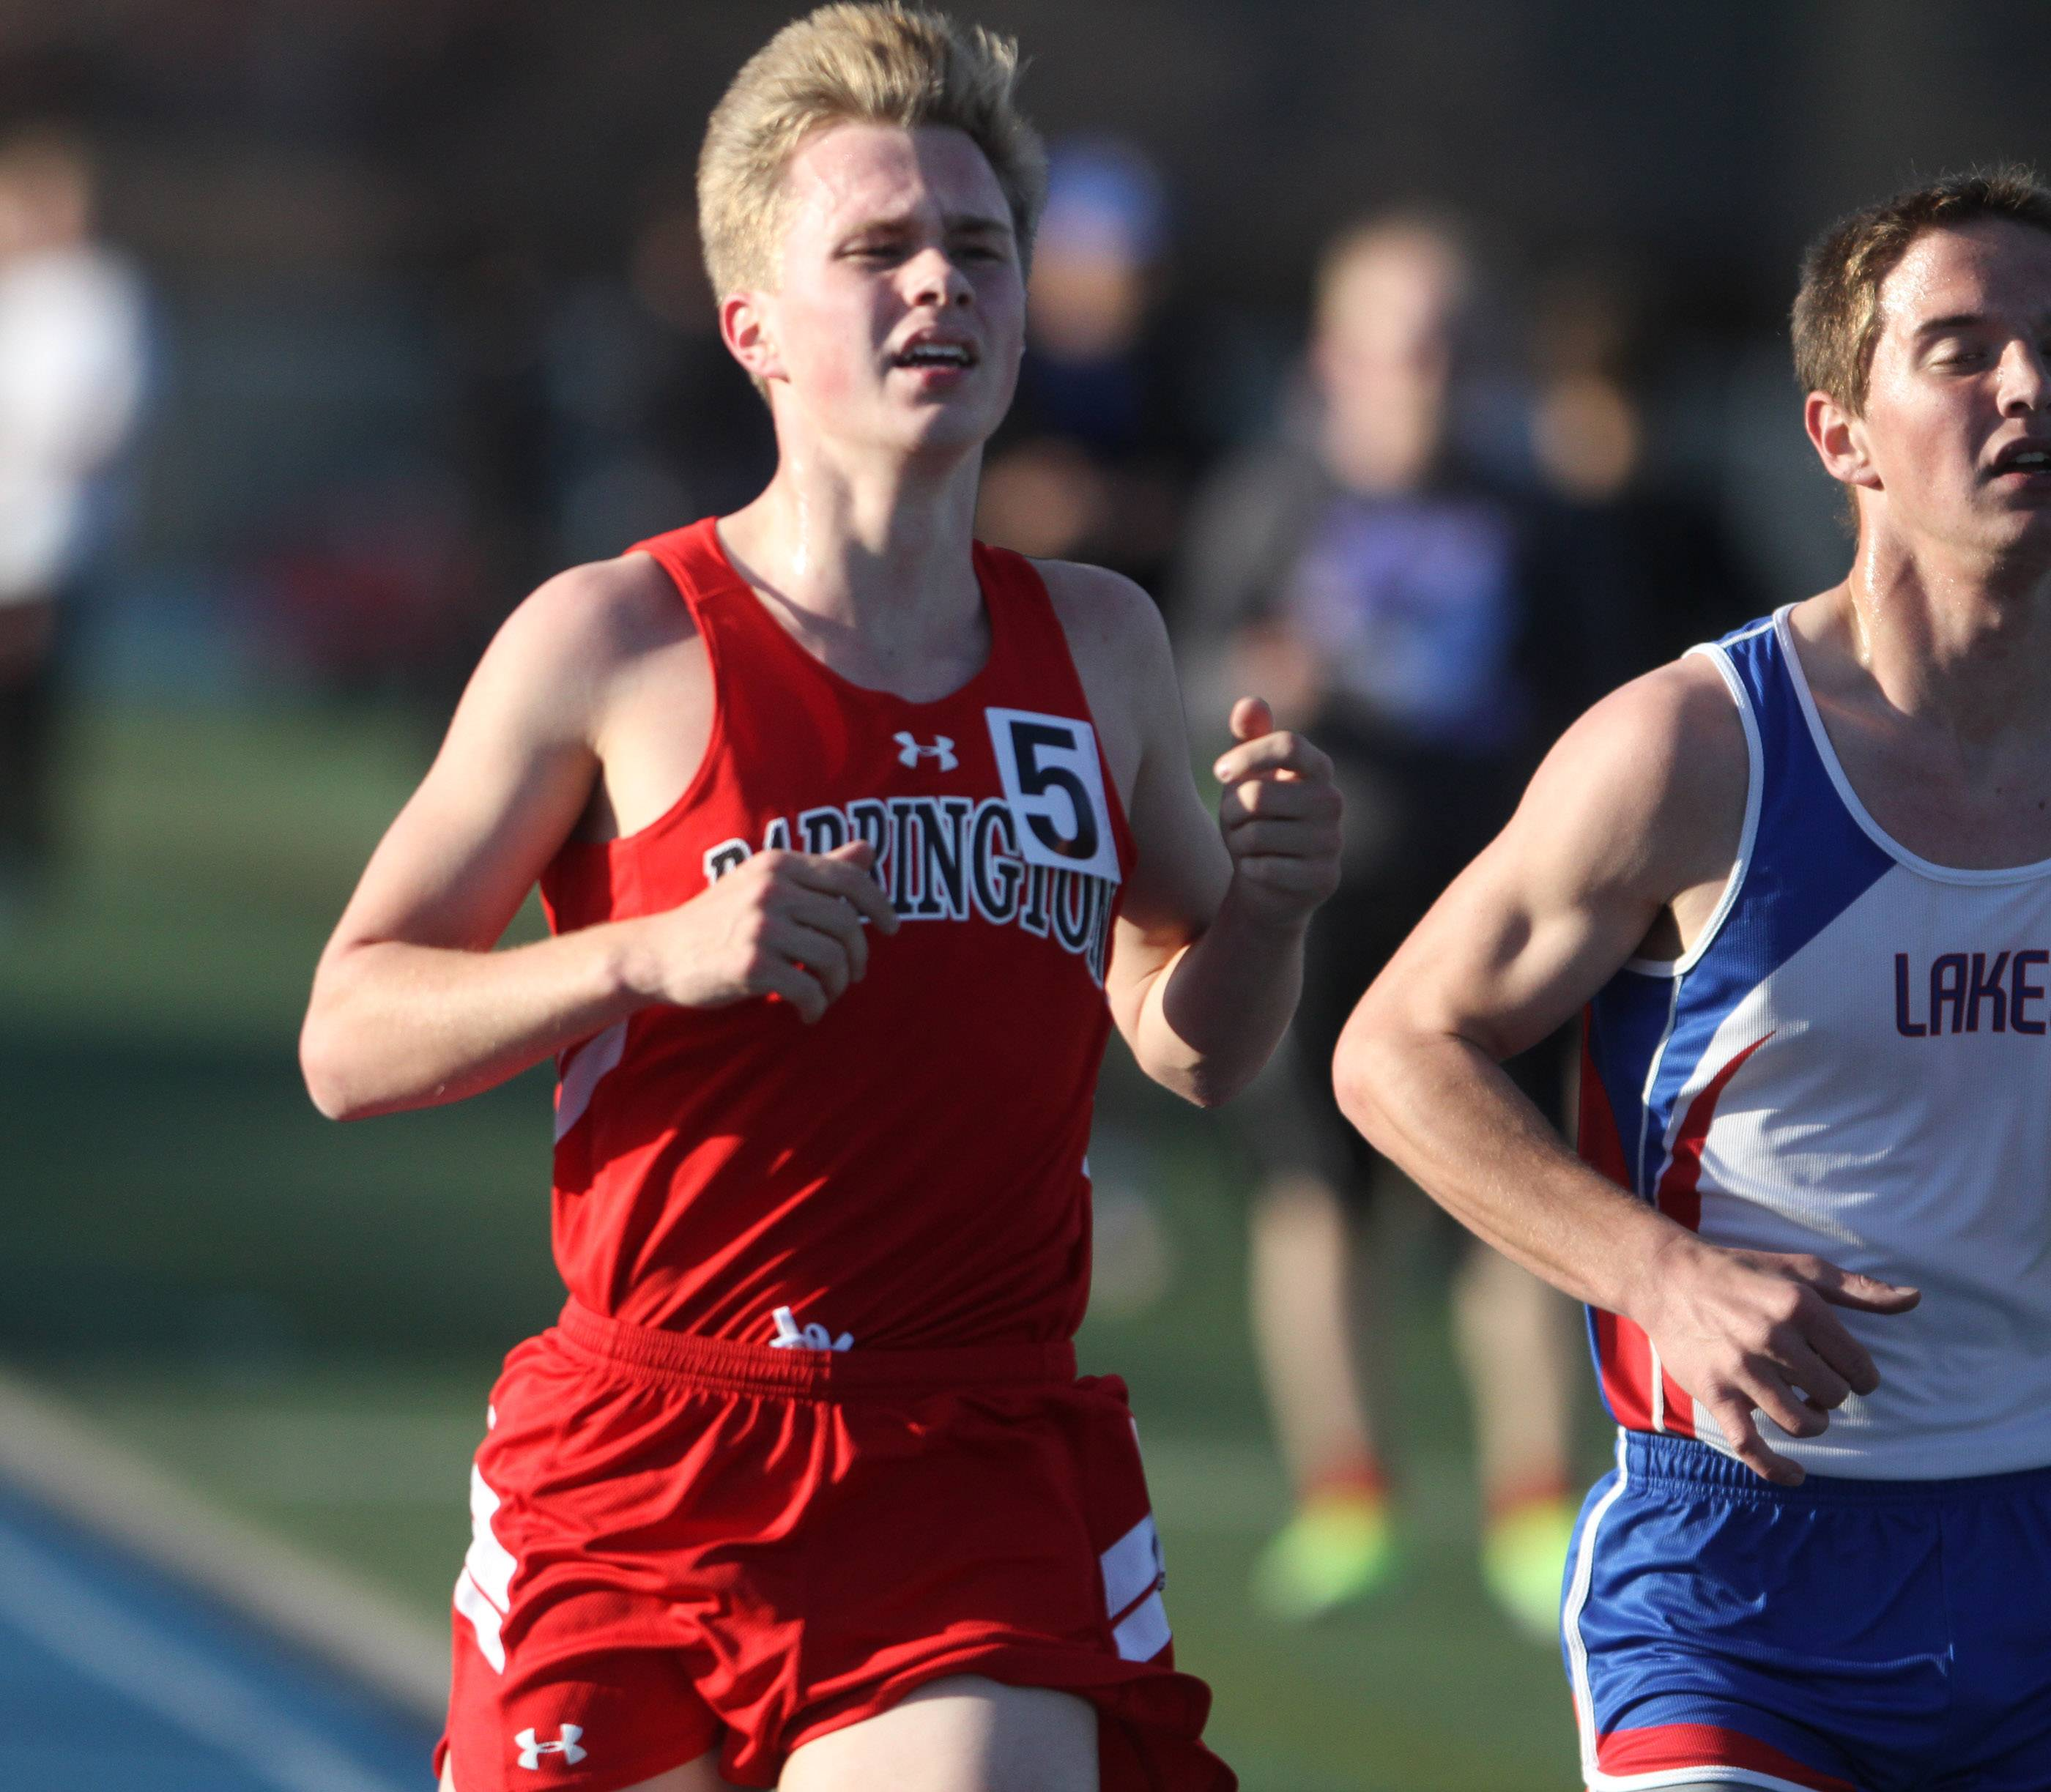 Barrington's Jake Herb placed second in the 3,200-meter run at the Lake Zurich boys track invite on Friday.